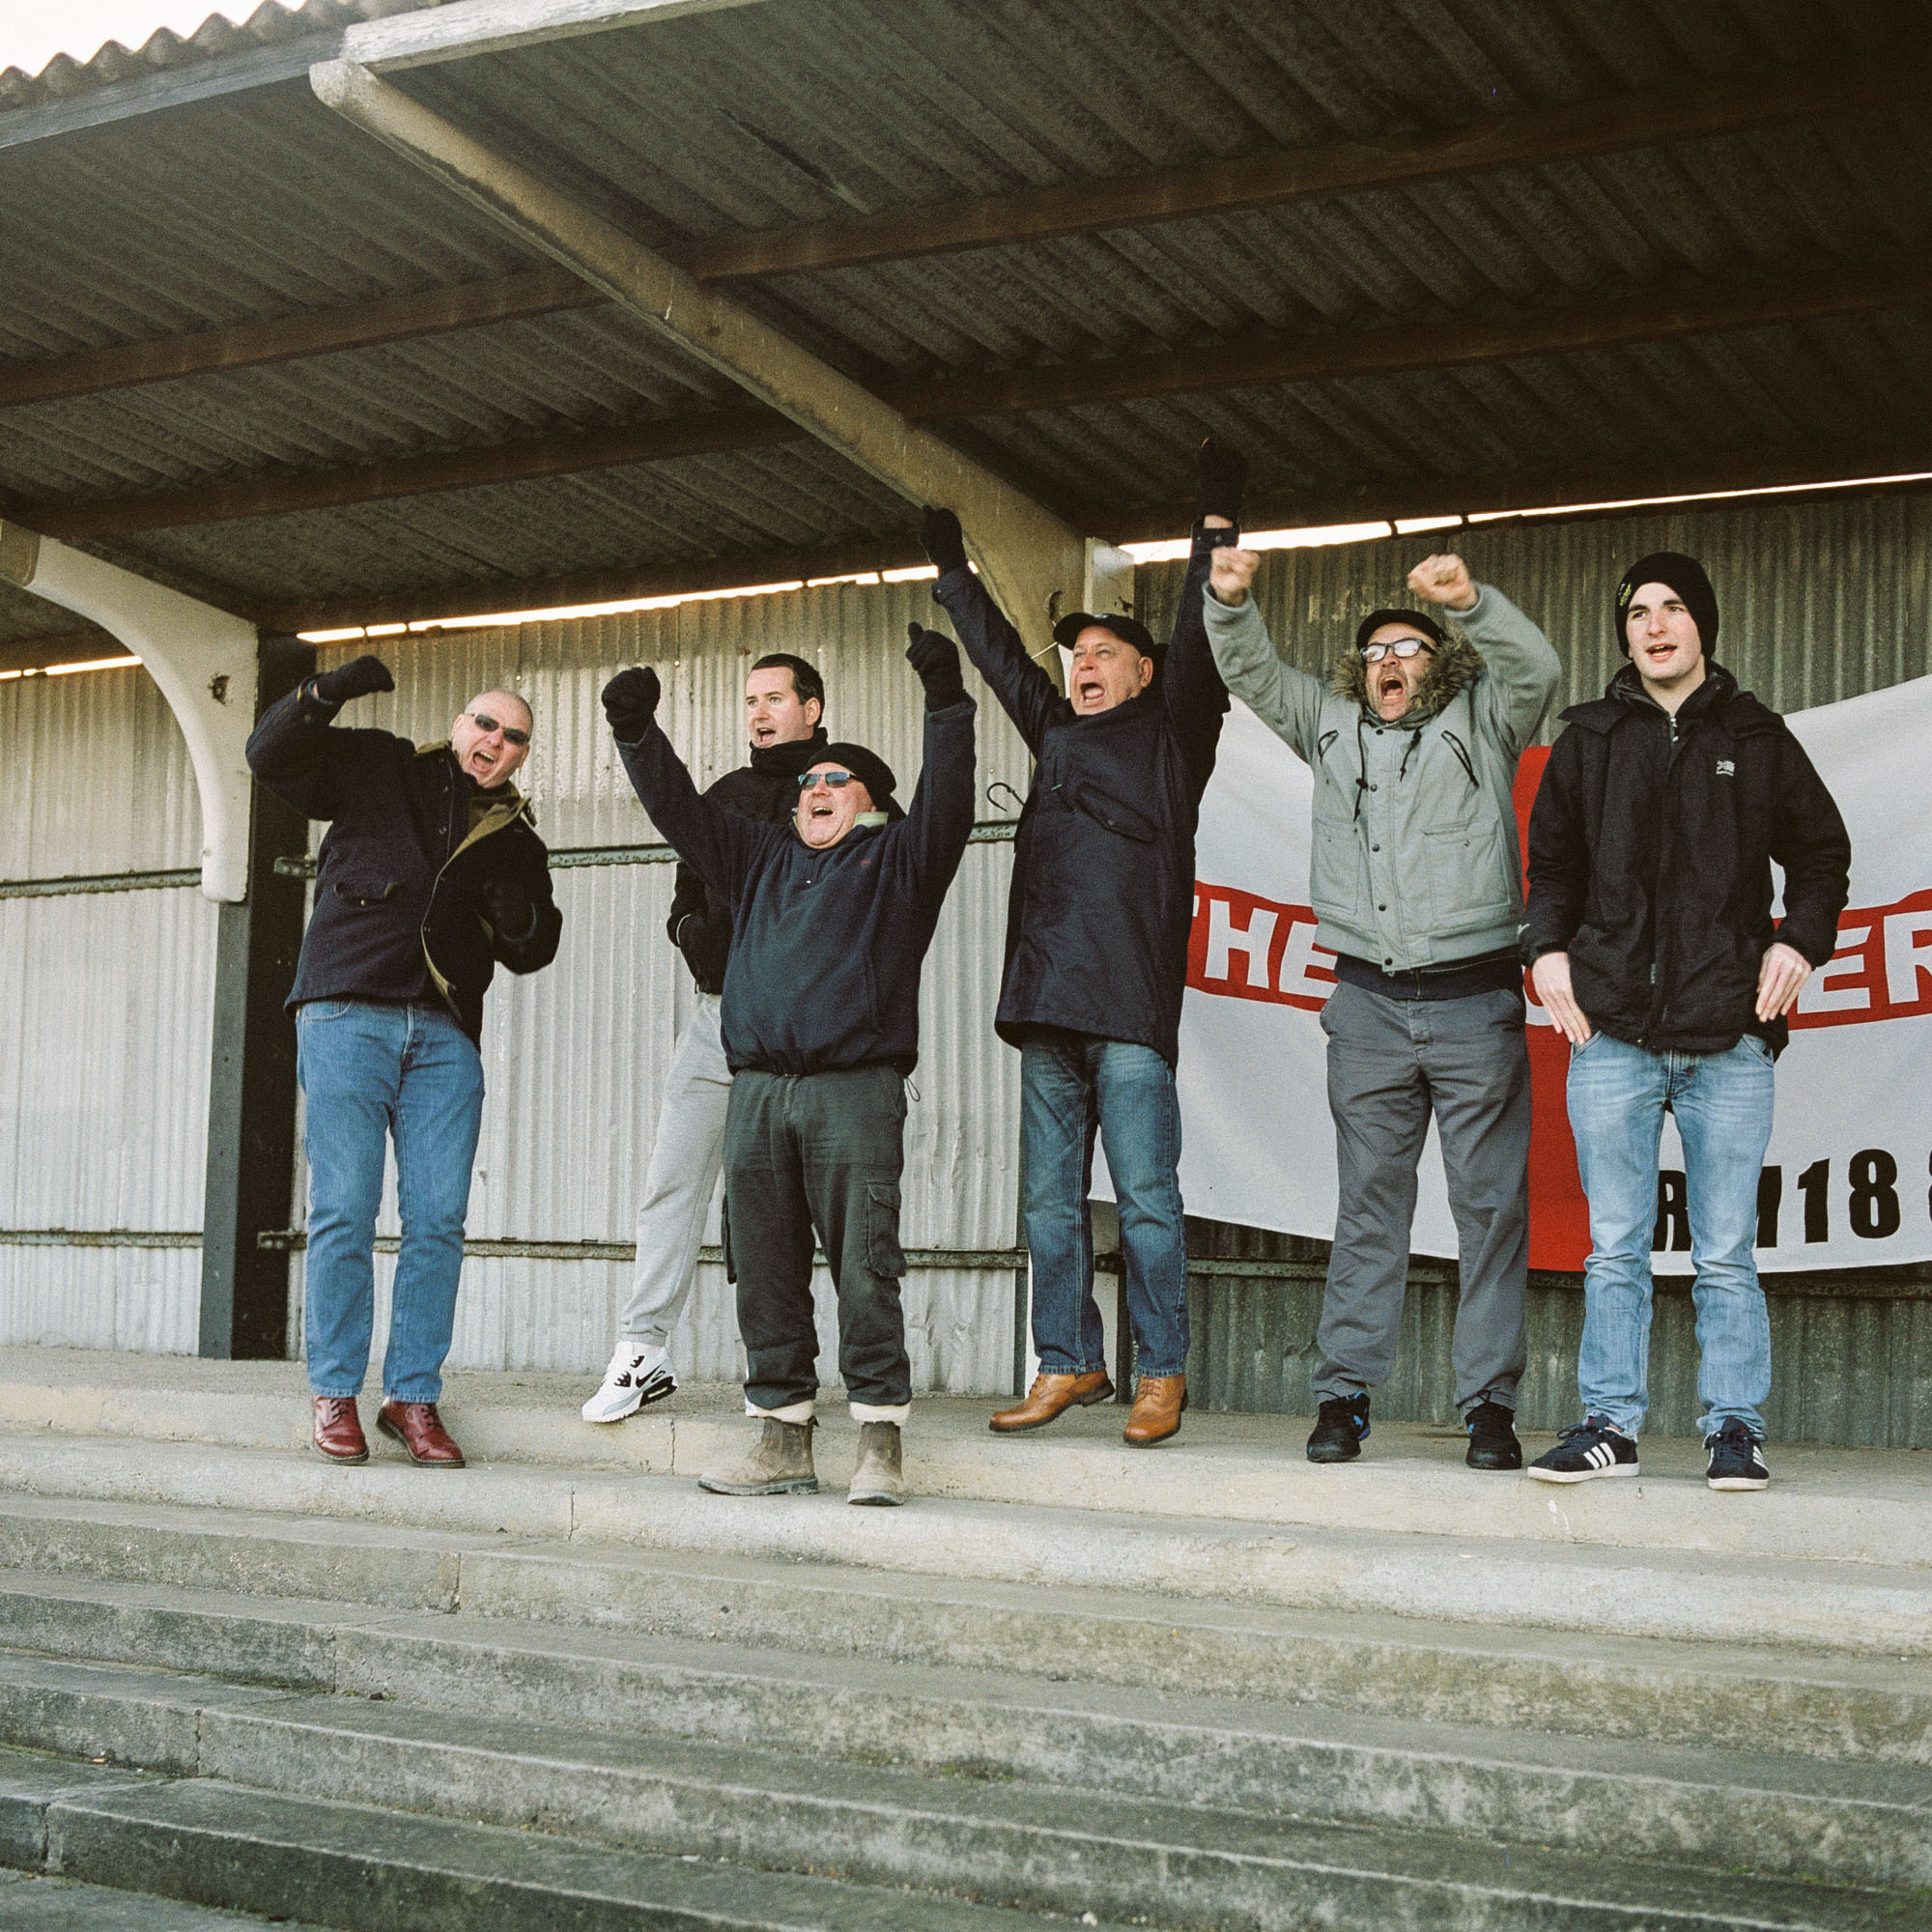 Mick, John and friends celebrate Tilbury Town FC scoring against Haringey Borough FC at Chadfields